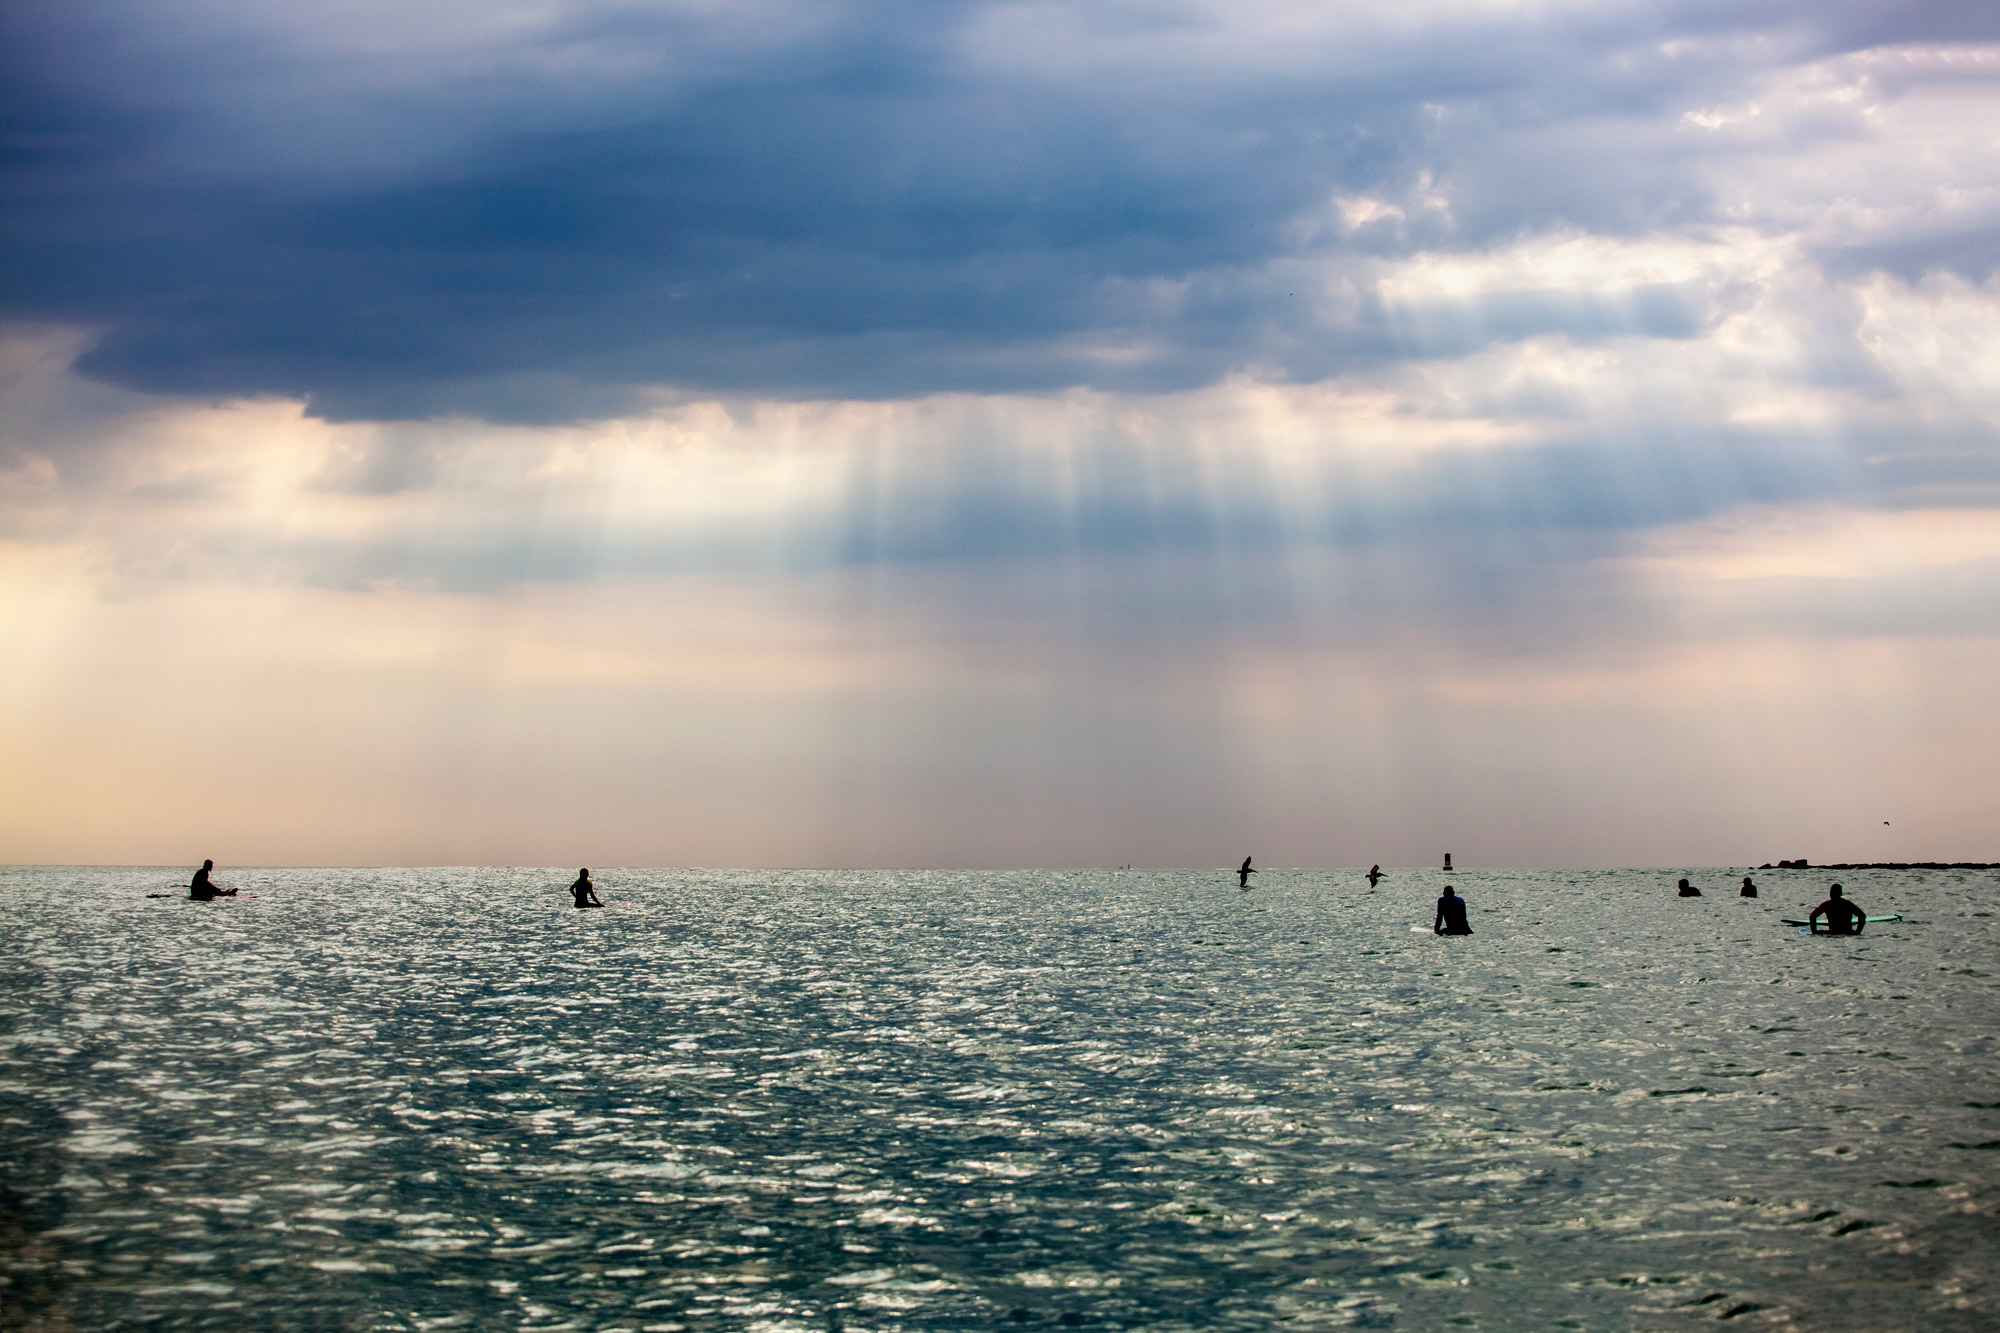 Texas surfers in lineup with dramatic sky